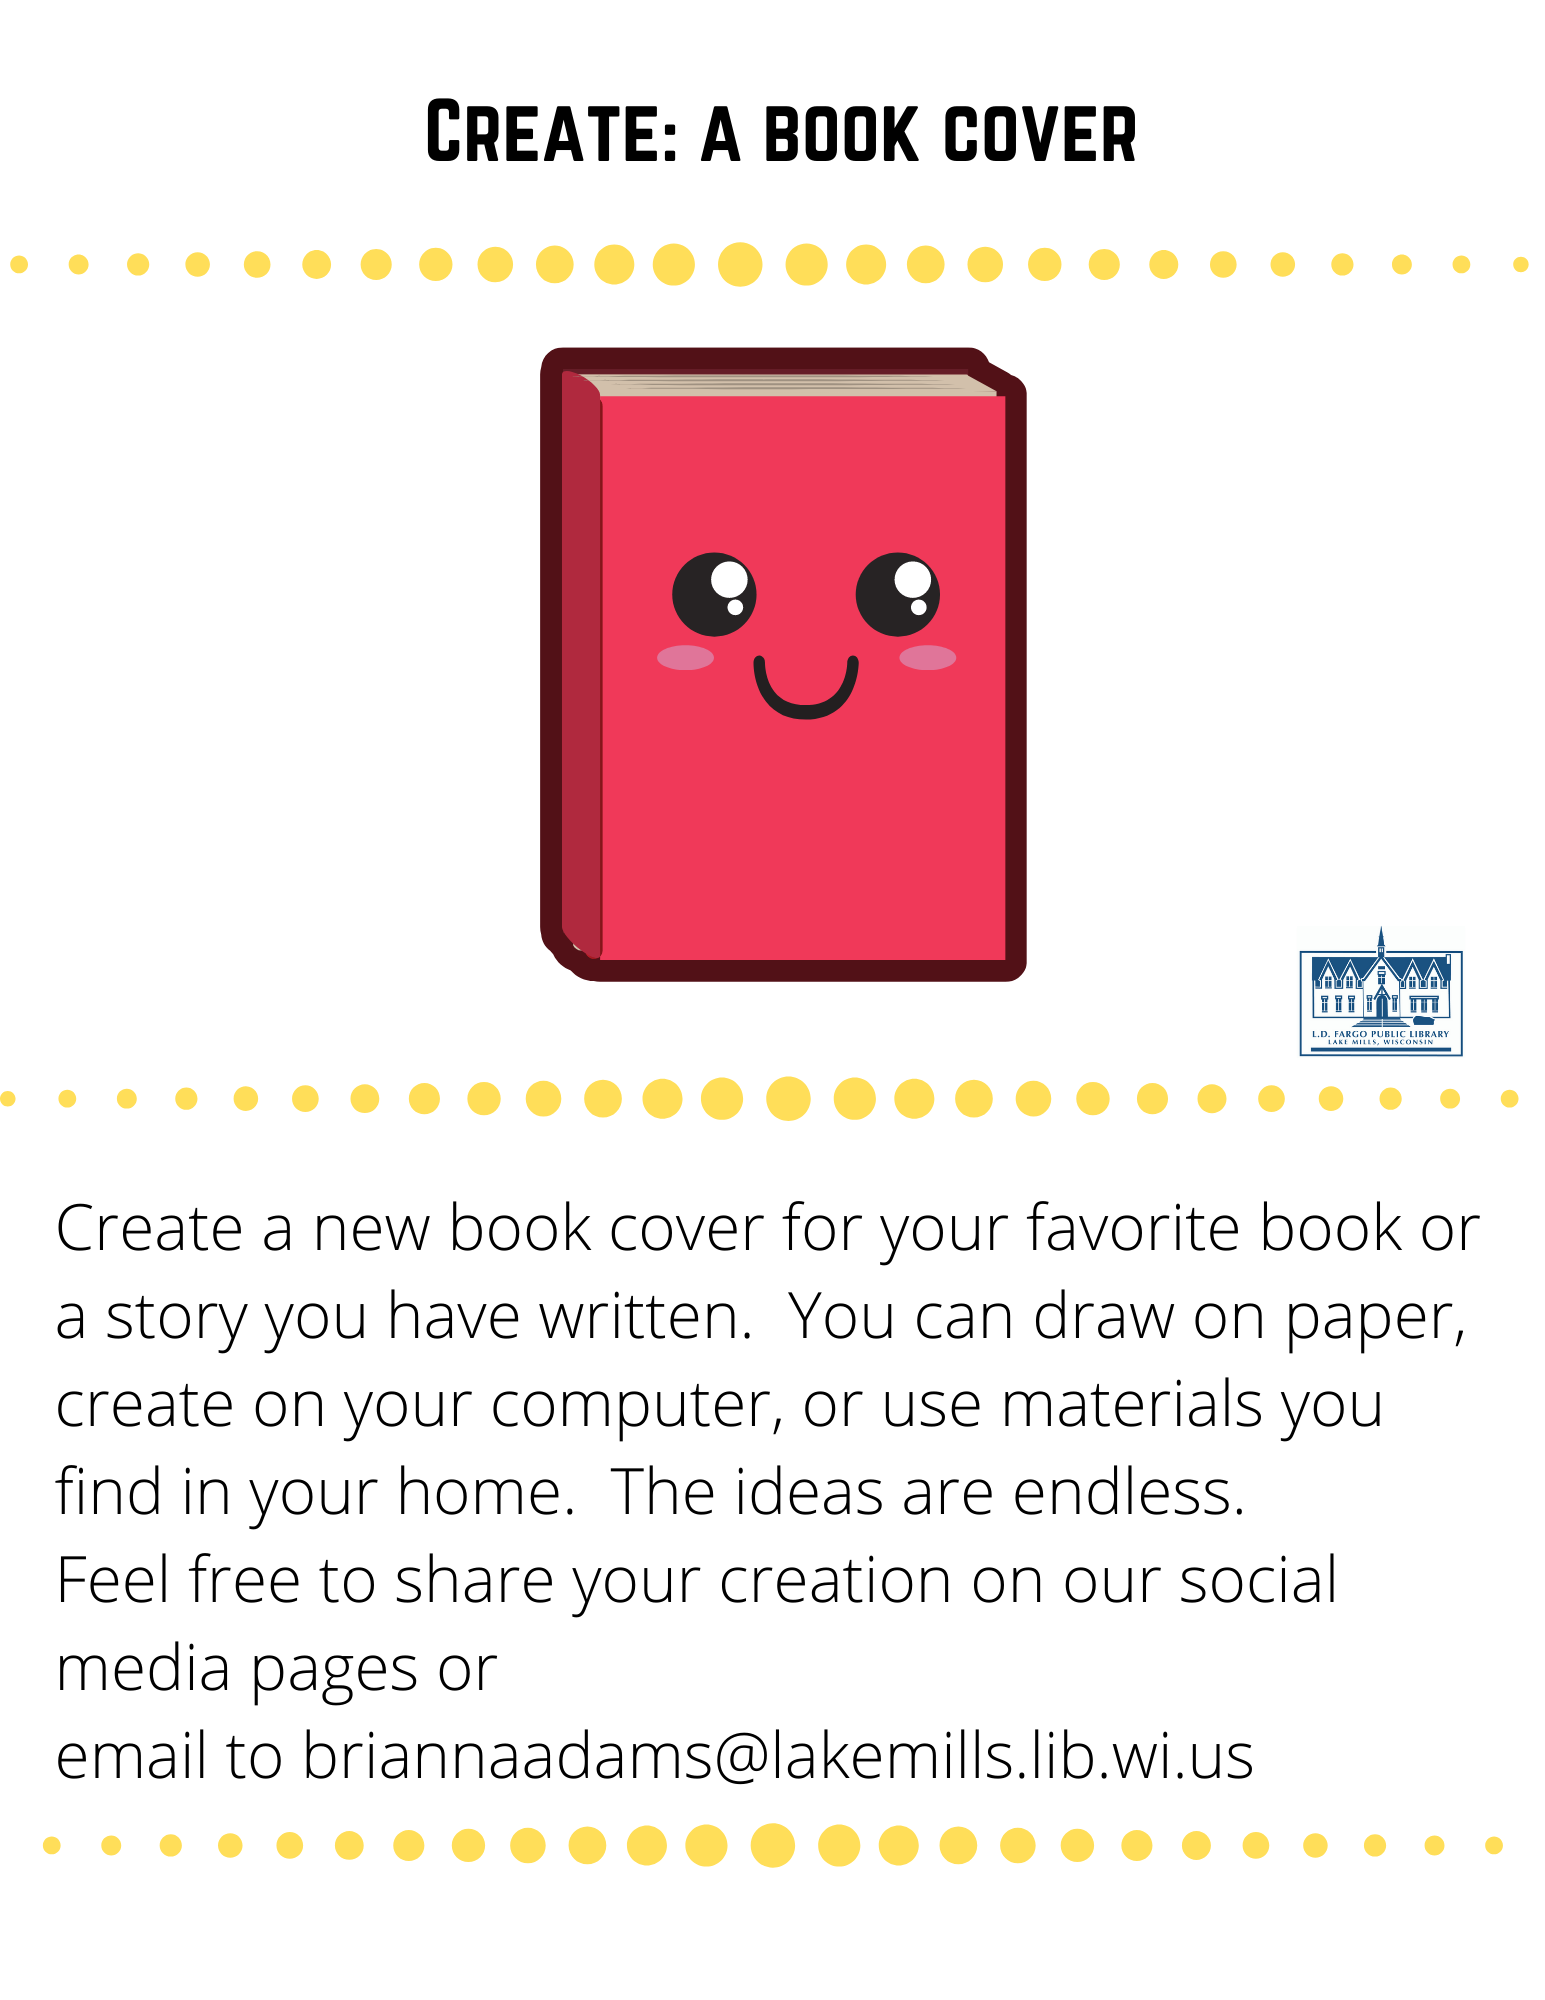 Create: a book cover  Create a new book cover for your favorite book or a story you have written.  You can draw on paper, create on your computer, or use materials you find in your home.  The ideas are endless. Feel free to share your creation on our social media pages or  email to briannaadams@lakemills.lib.wi.us